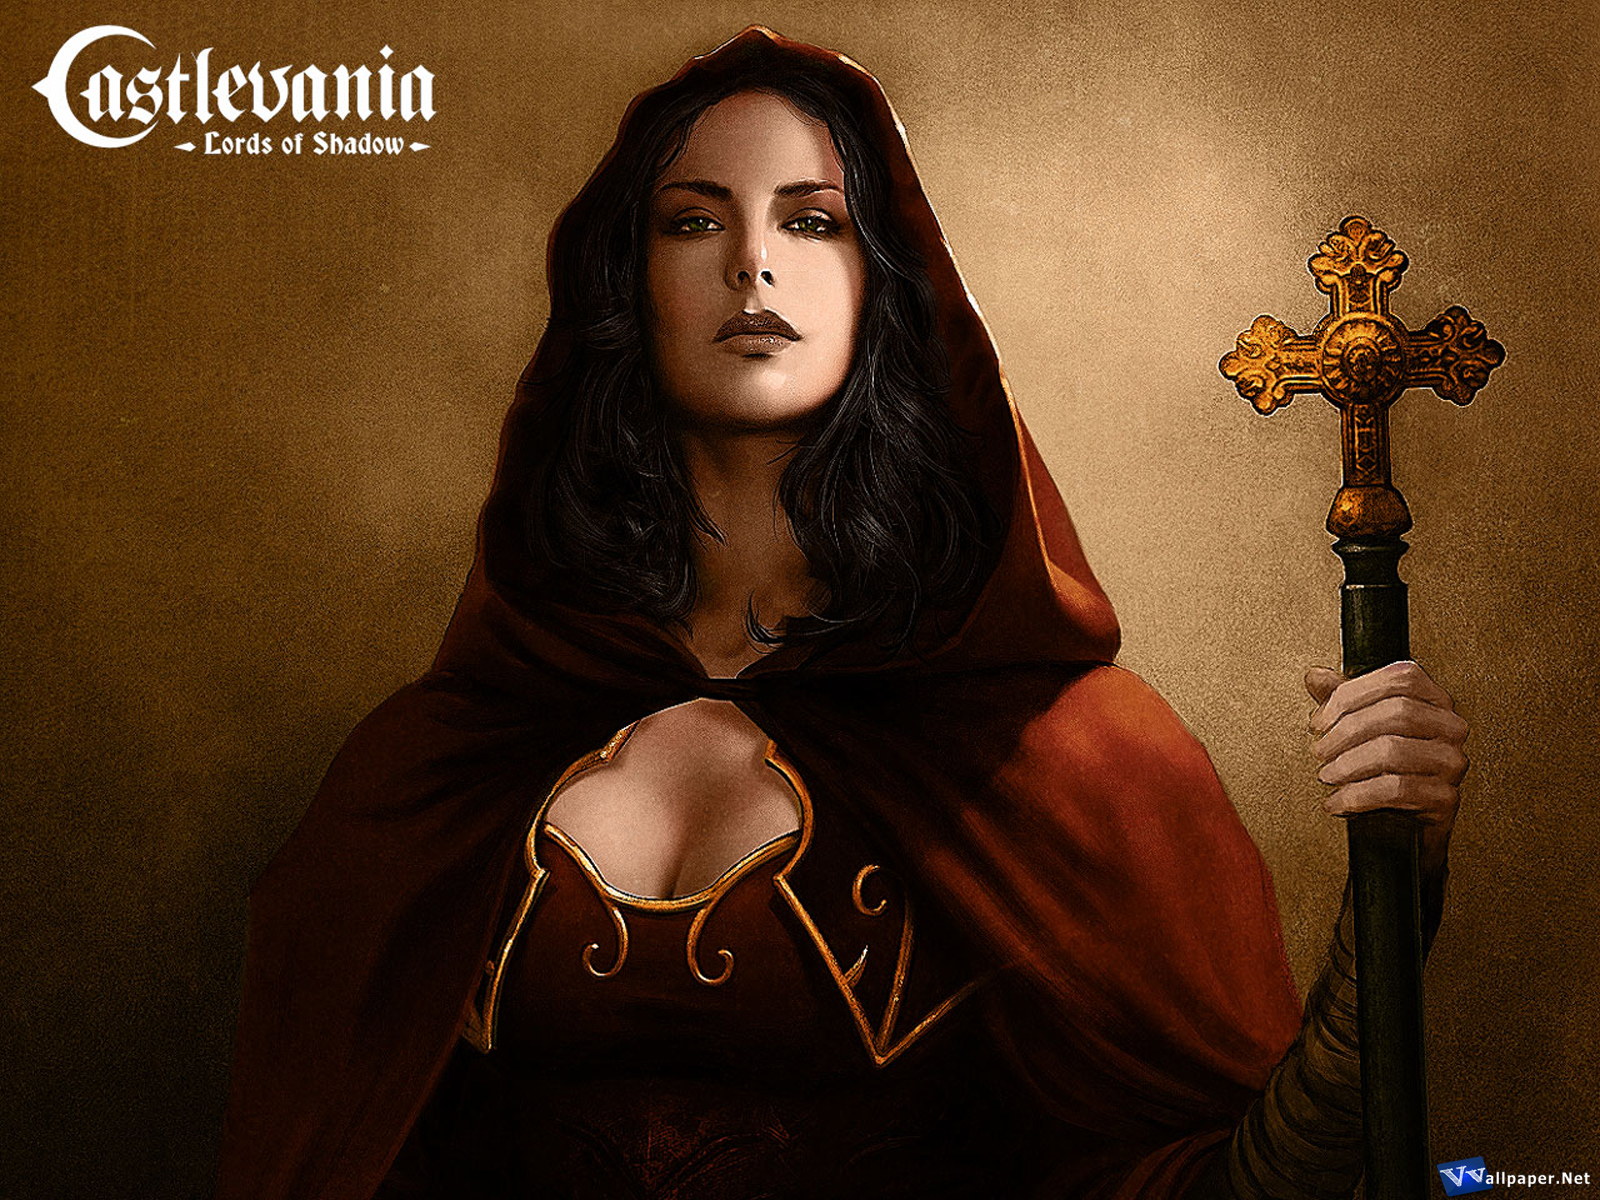 homesas: castlevania lords of shadow hd game wallpapers